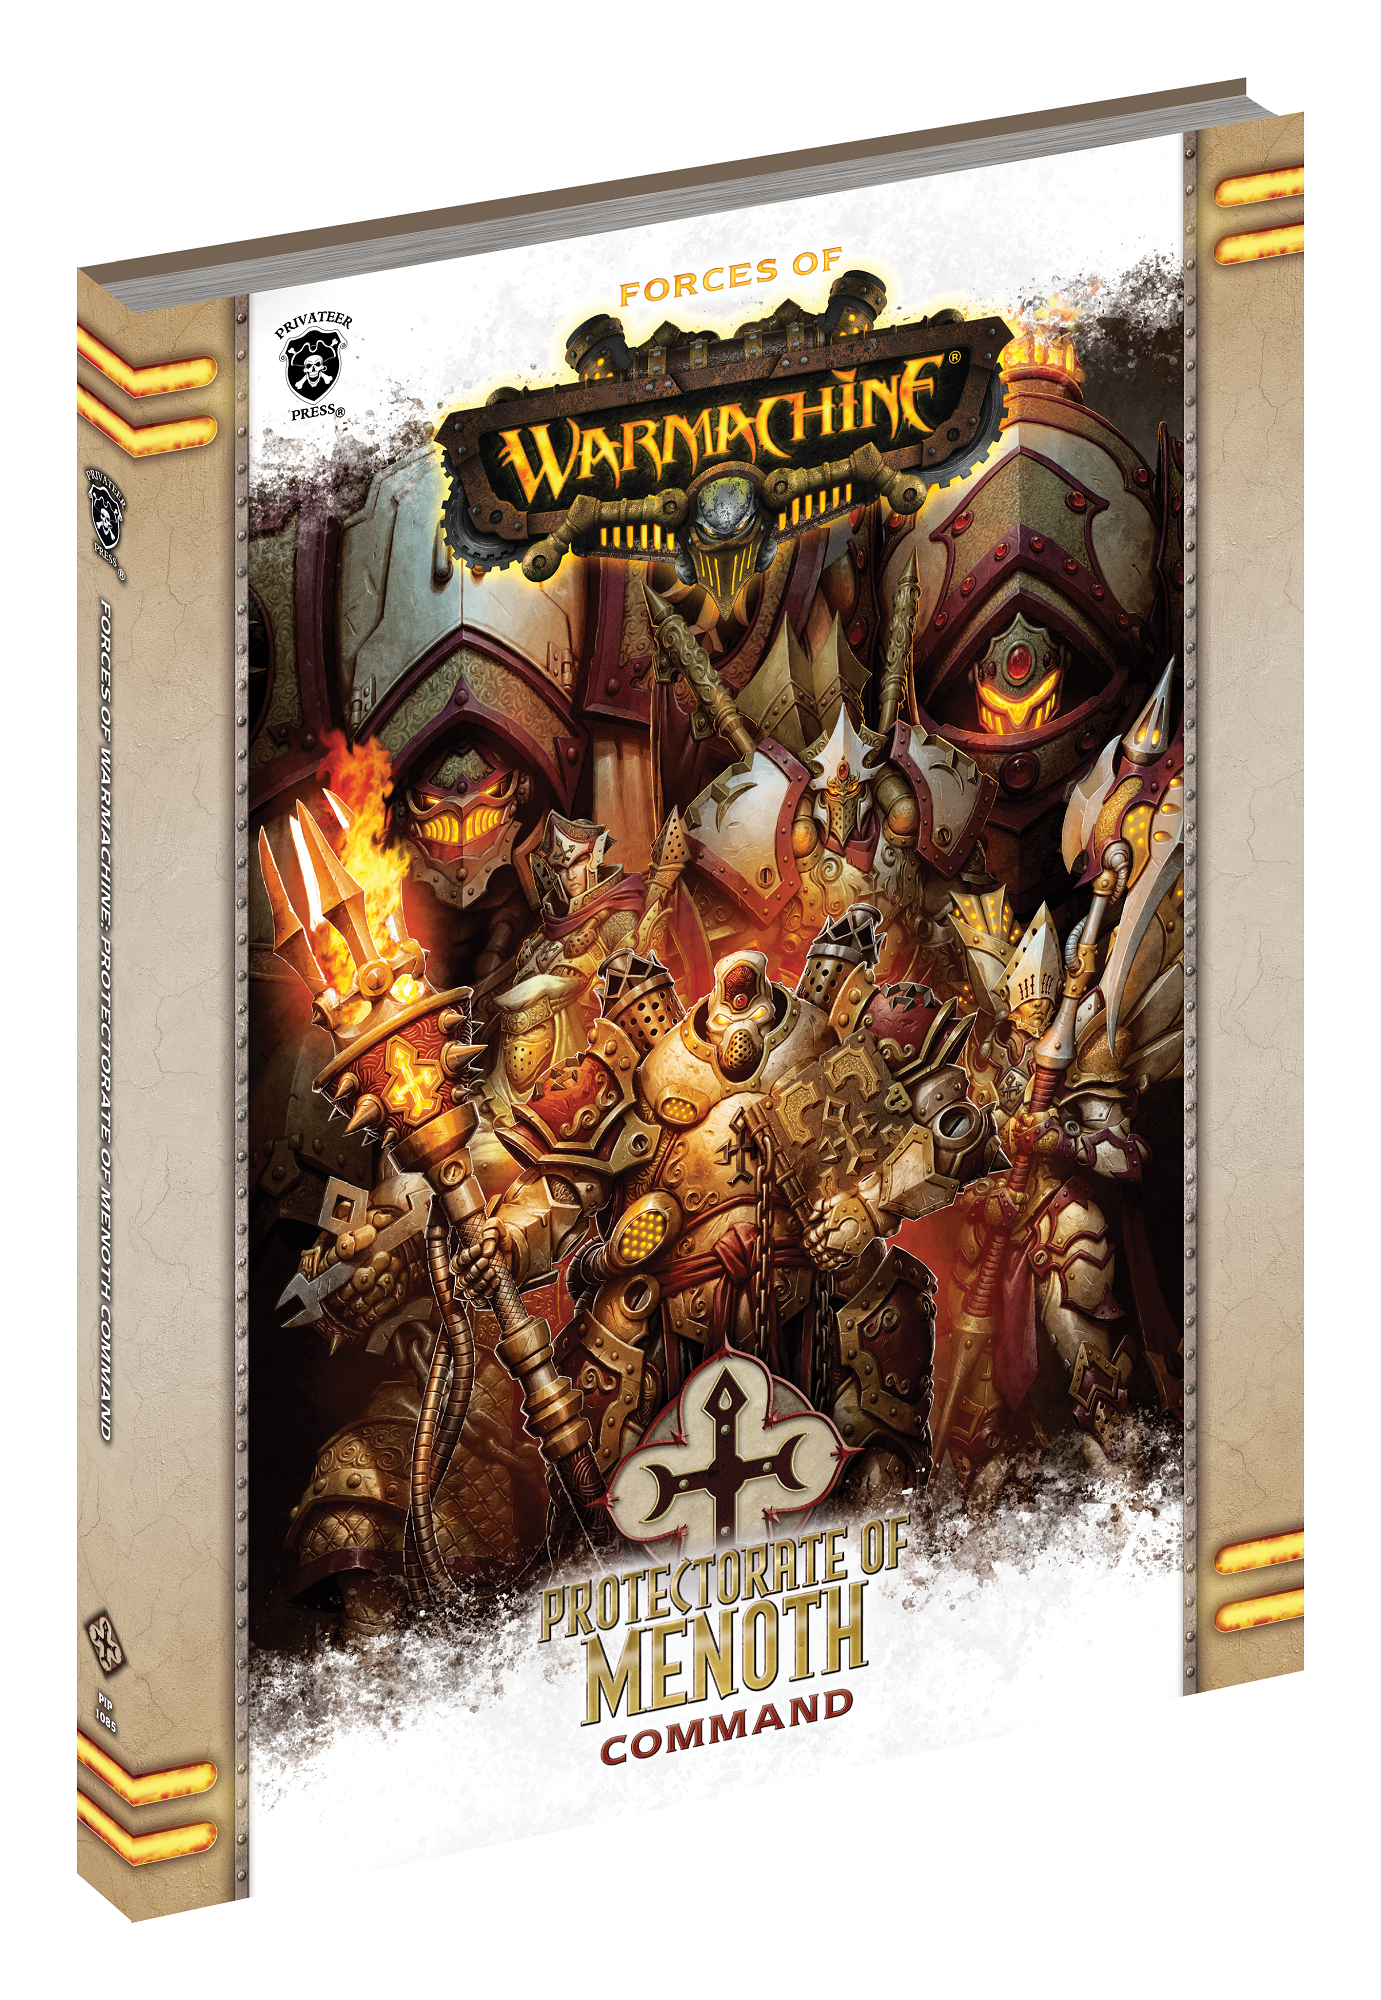 protectorate-of-menoth-command